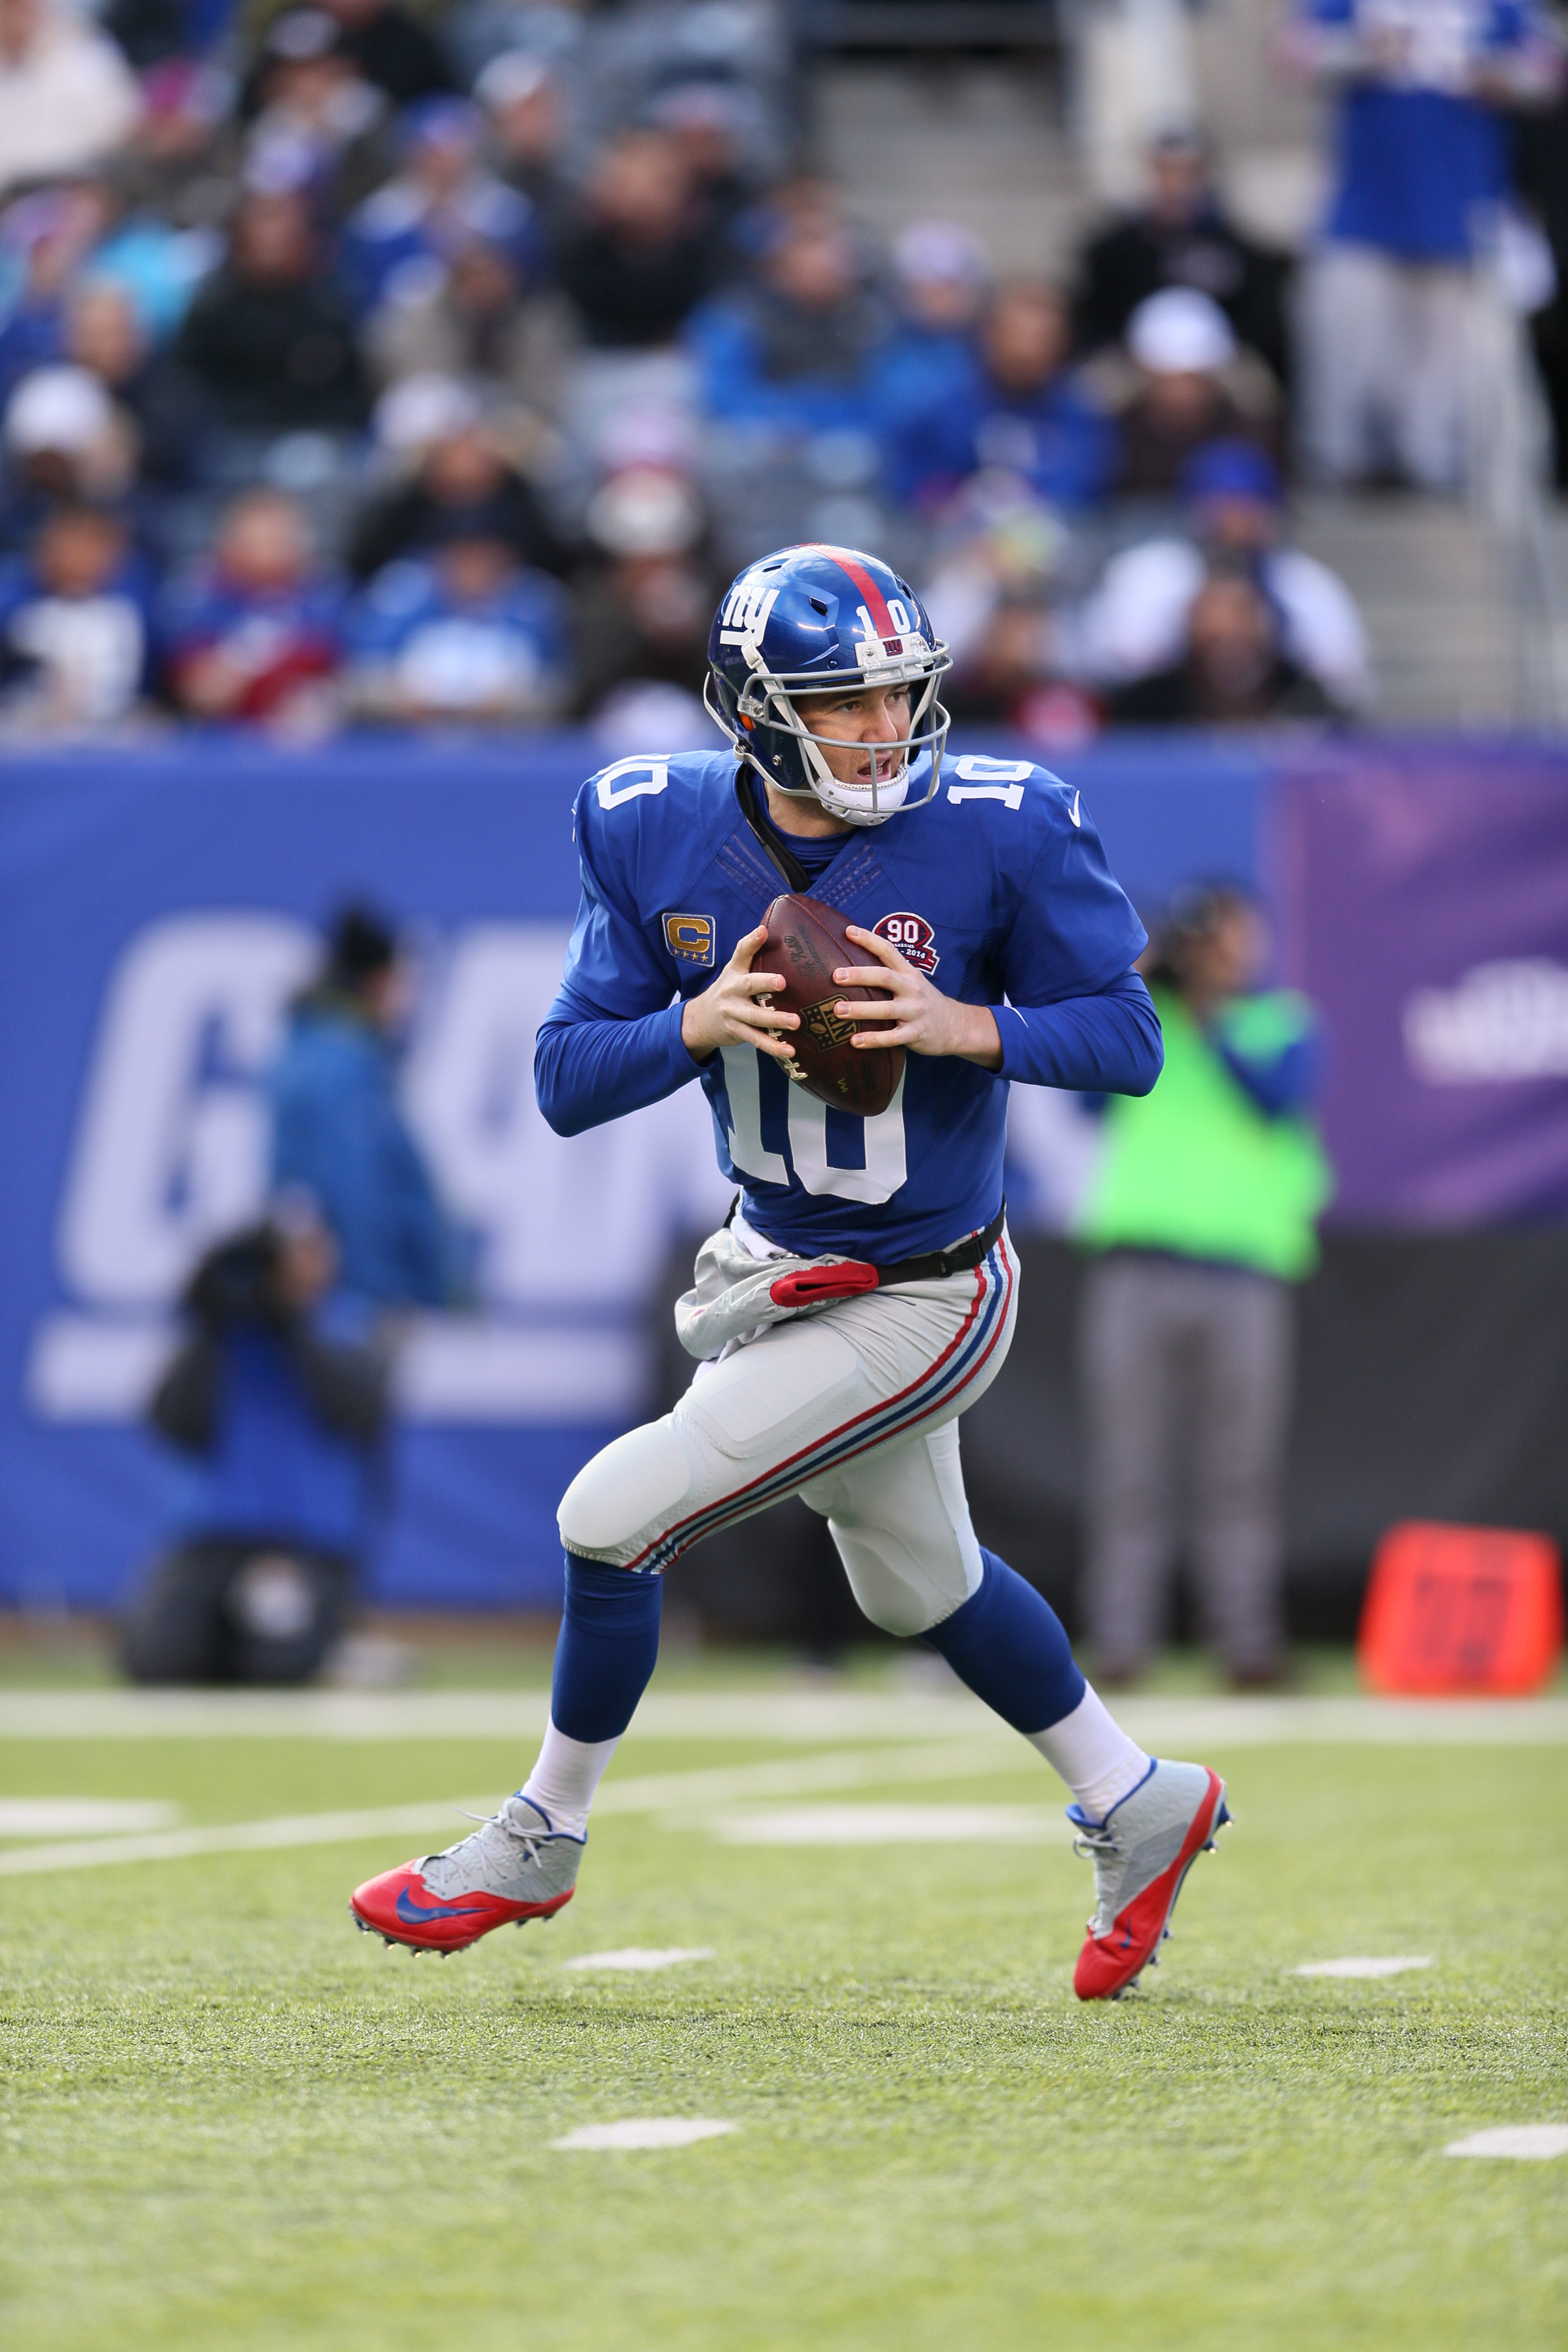 Eli Manning  (10) of the New York Giants in action against the Washington Redskins  on Sunday December 14, 2014 at MetLife Stadium in East Rutherford, NJ  (Damian Strohmeyer/ AP Images for DirecTV)